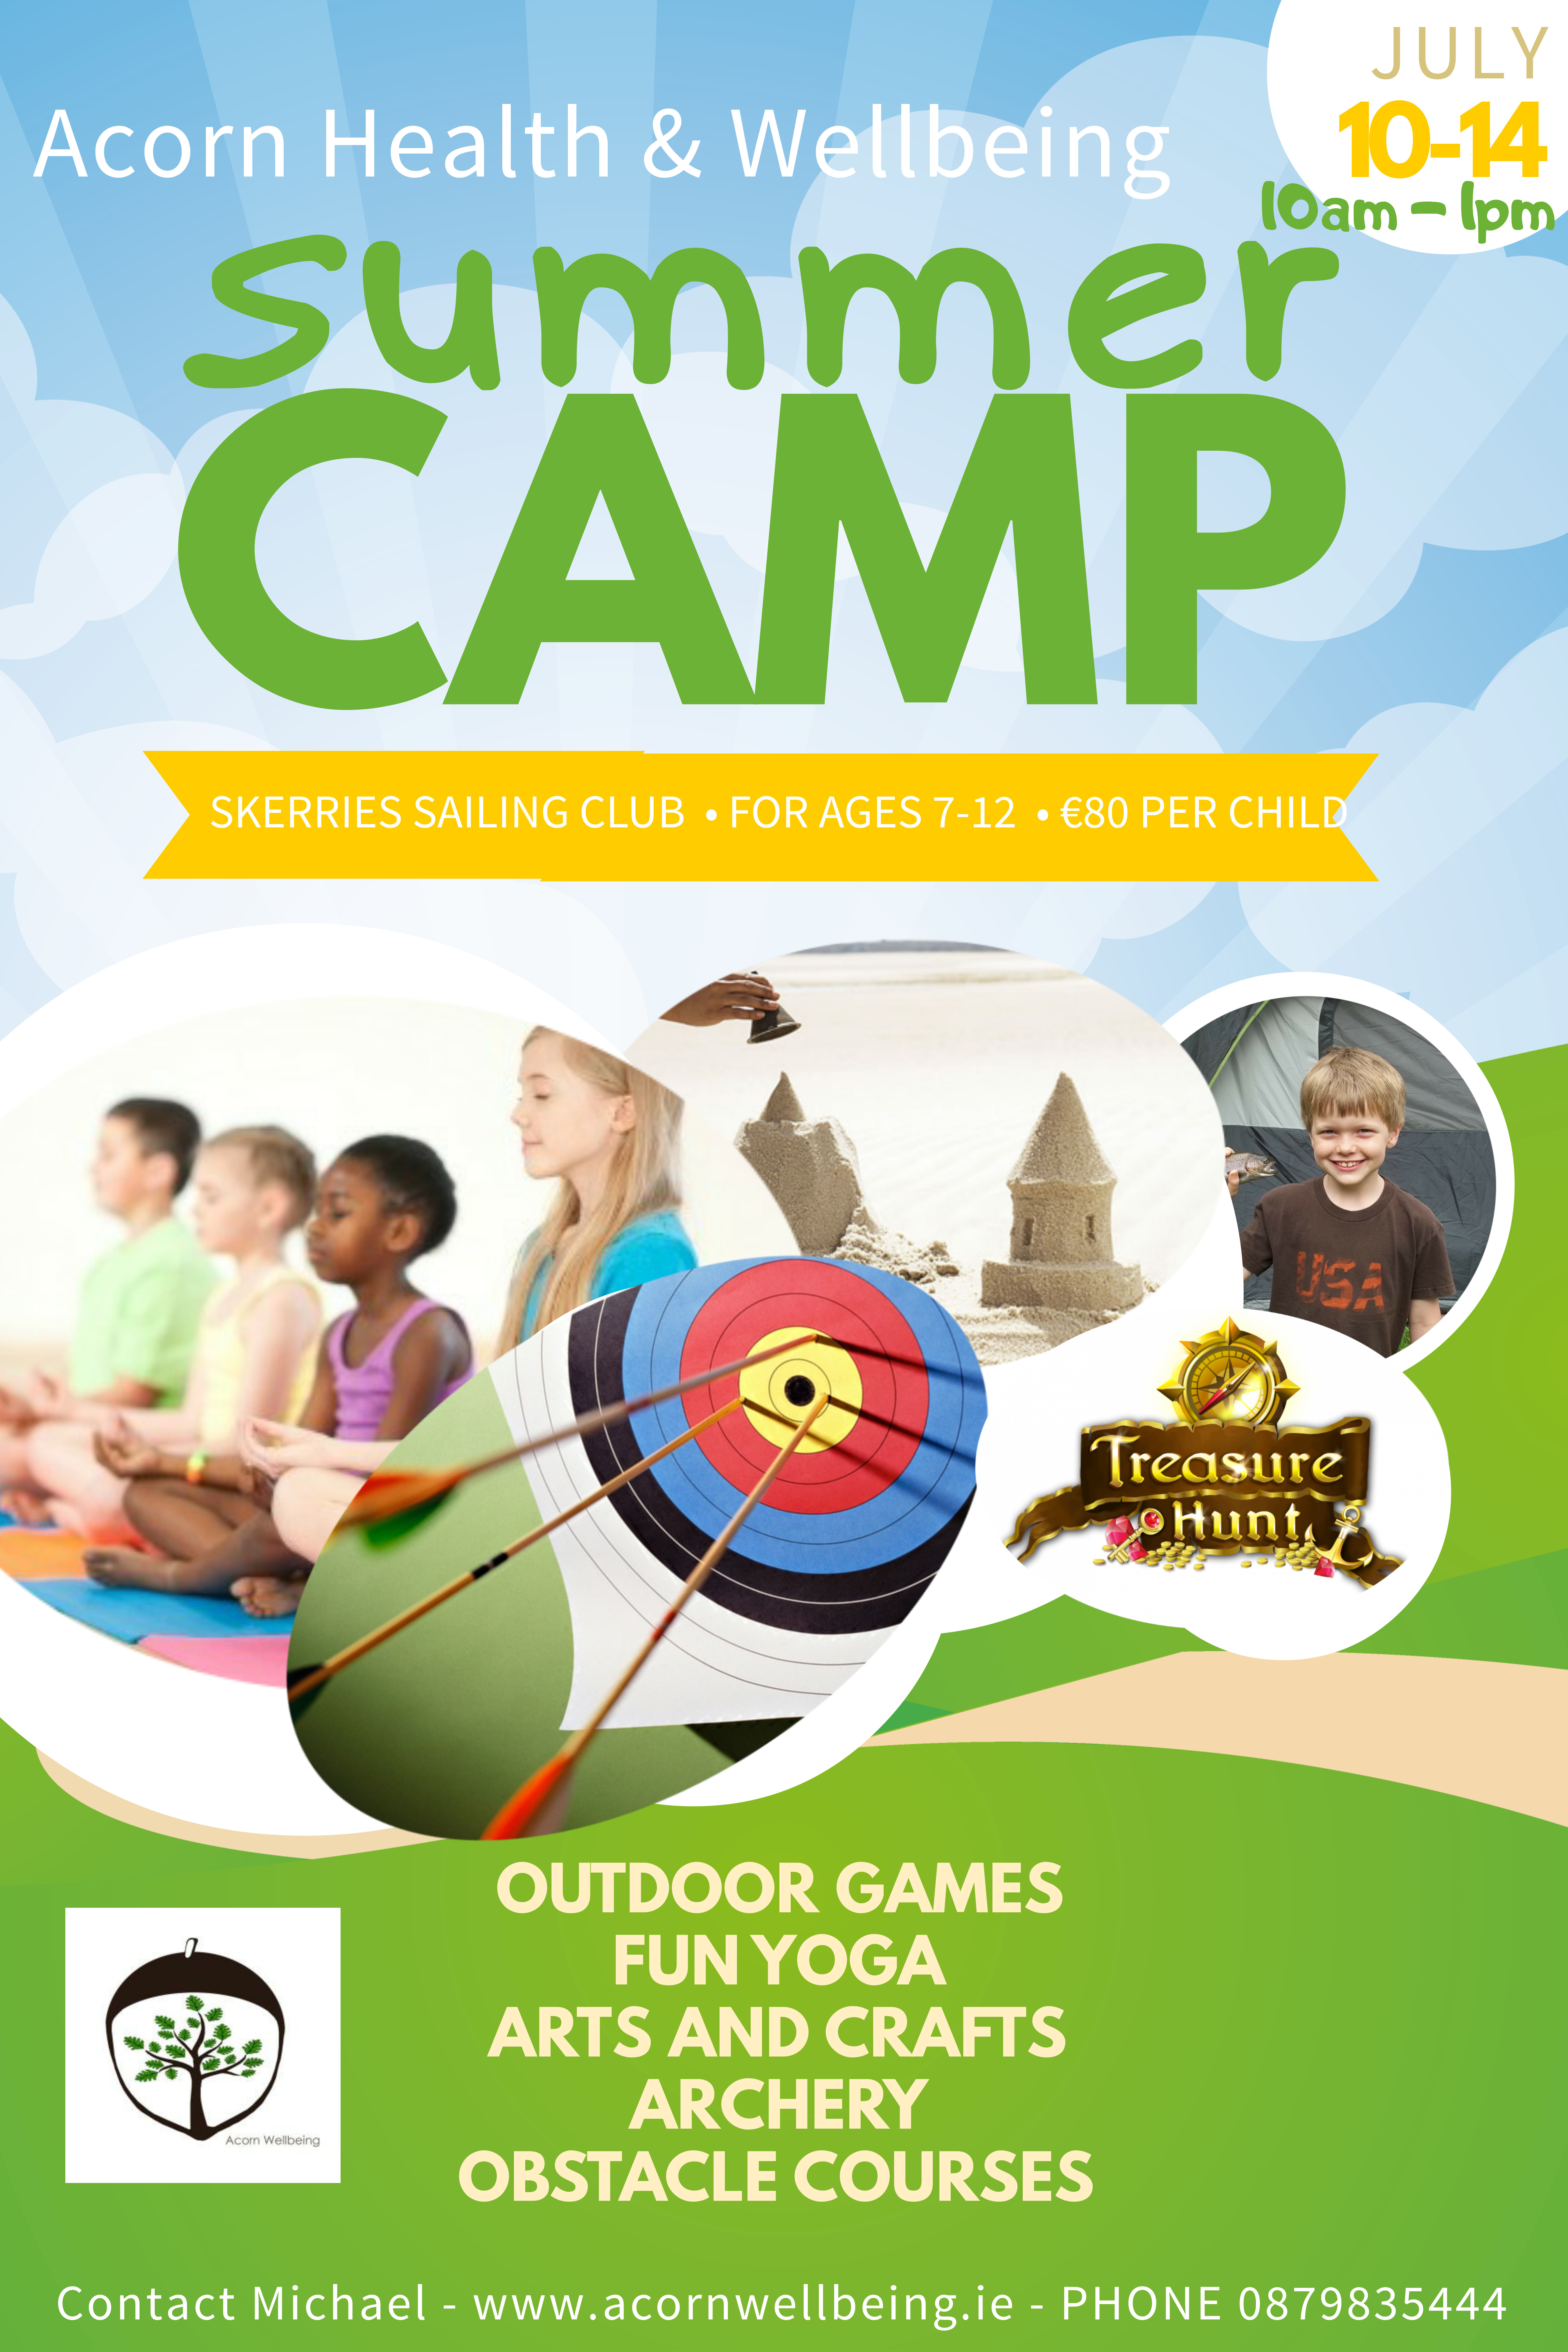 Copy of Summer Camp Flyer Template (2)   Acorn Wellbeing